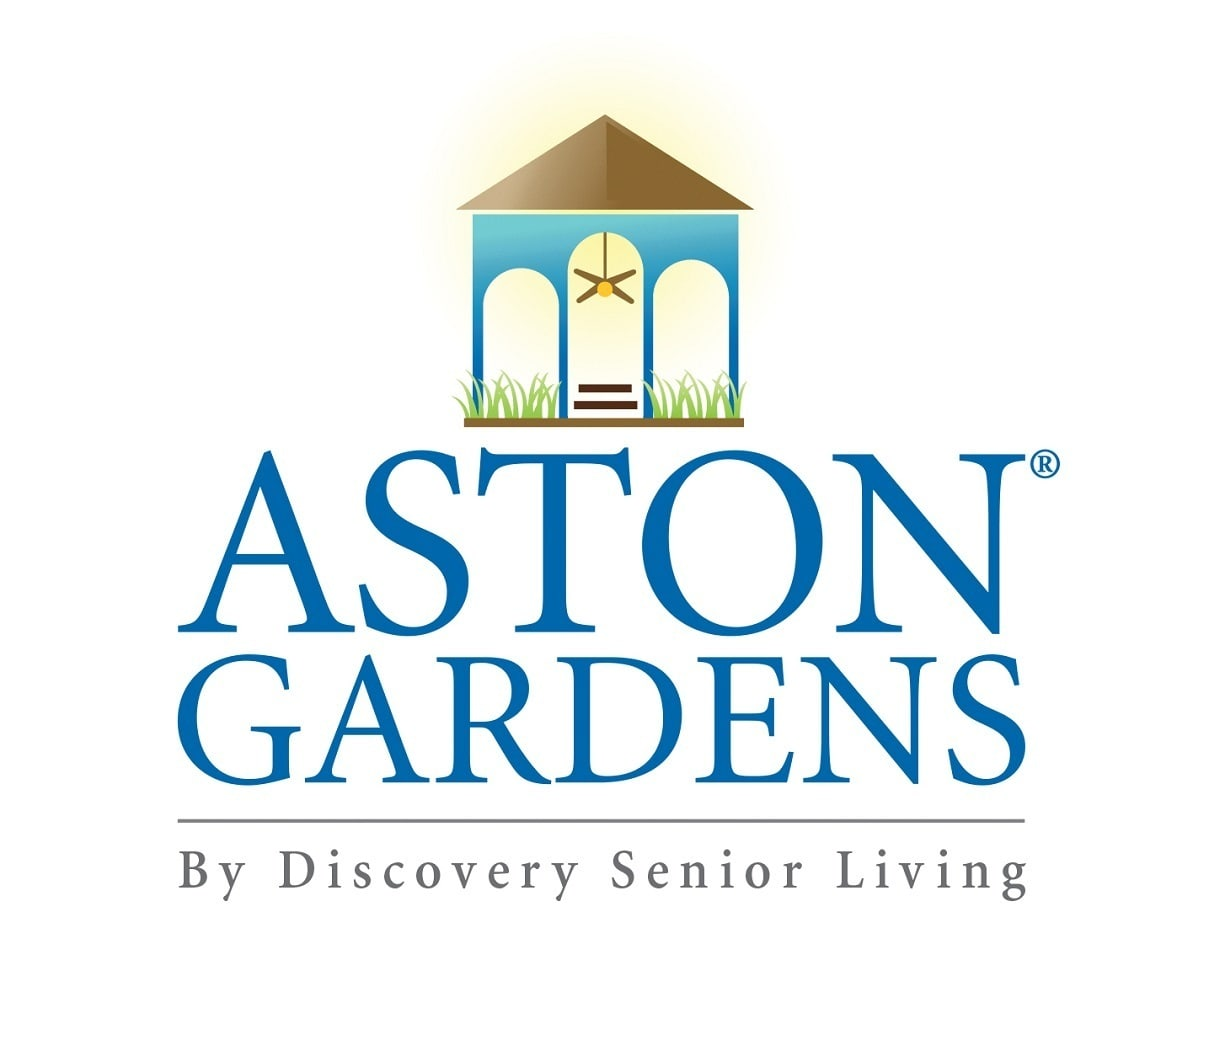 aston gardens world class senior living services